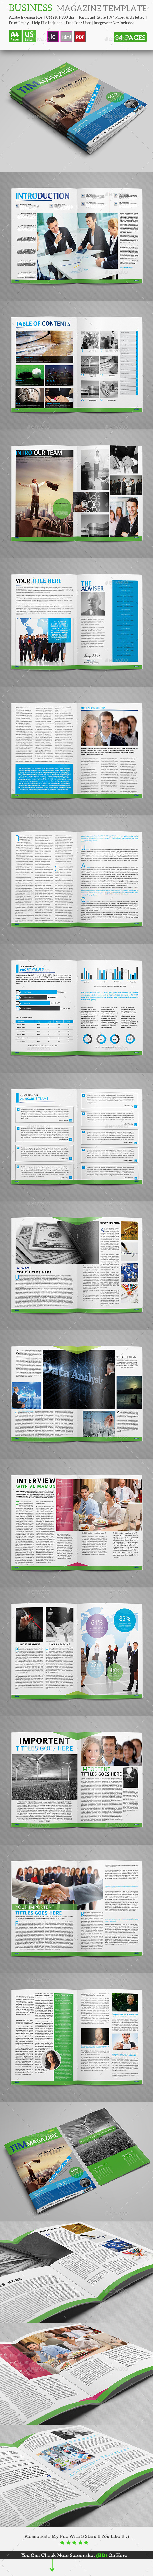 Business Magazine Template_34 Pages - Magazines Print Templates